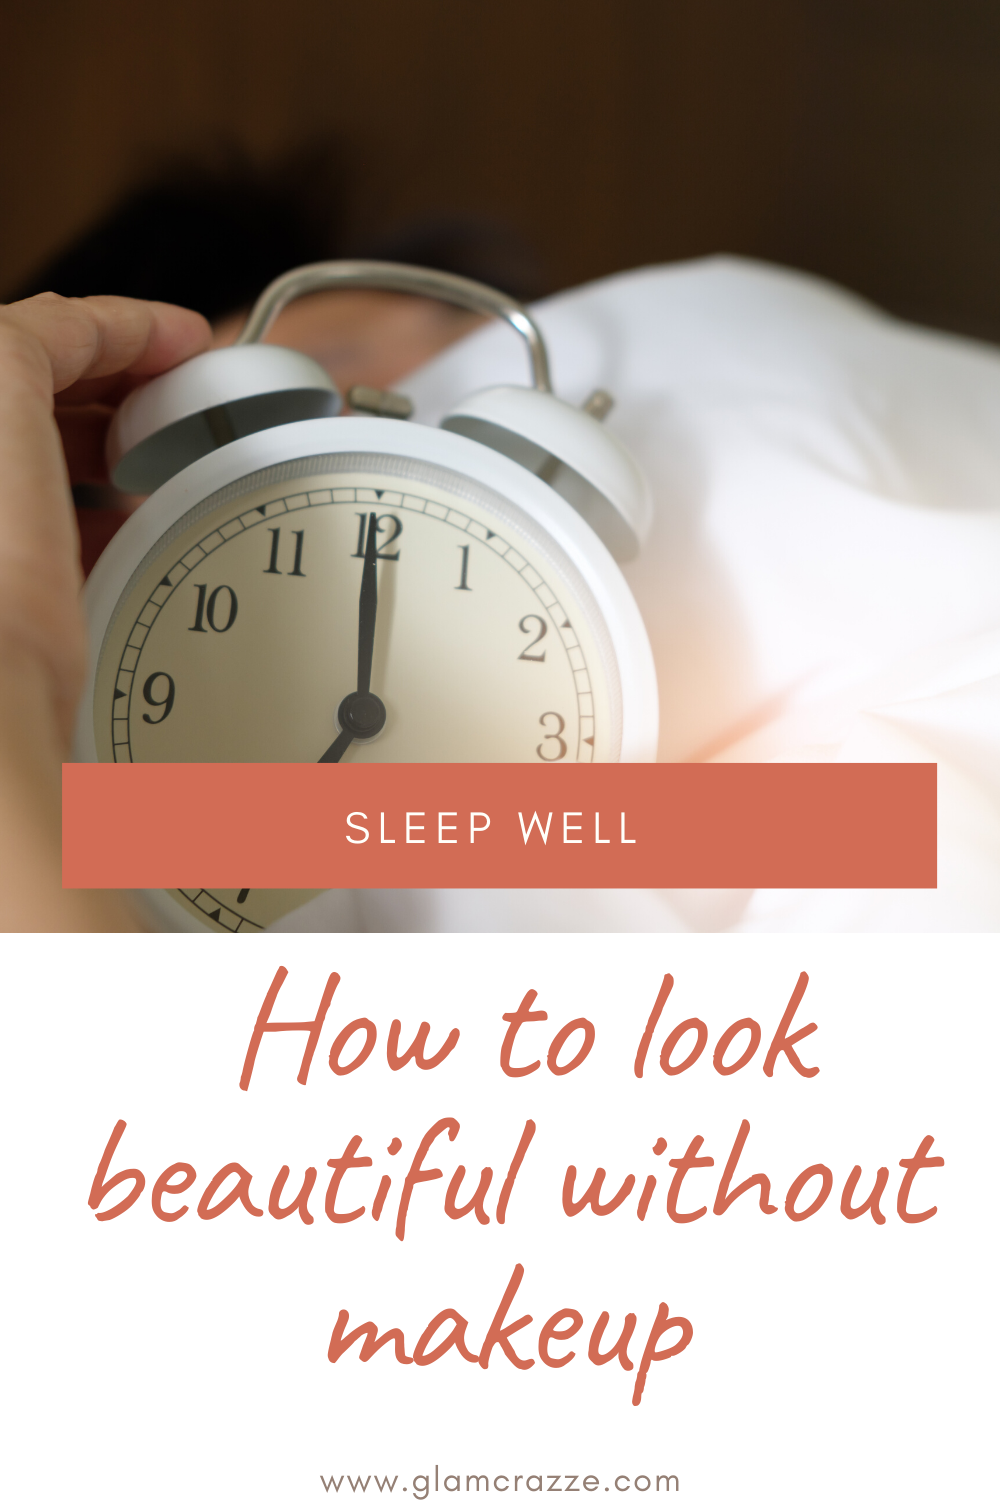 How to look beautiful without makeup get a beauty sleep